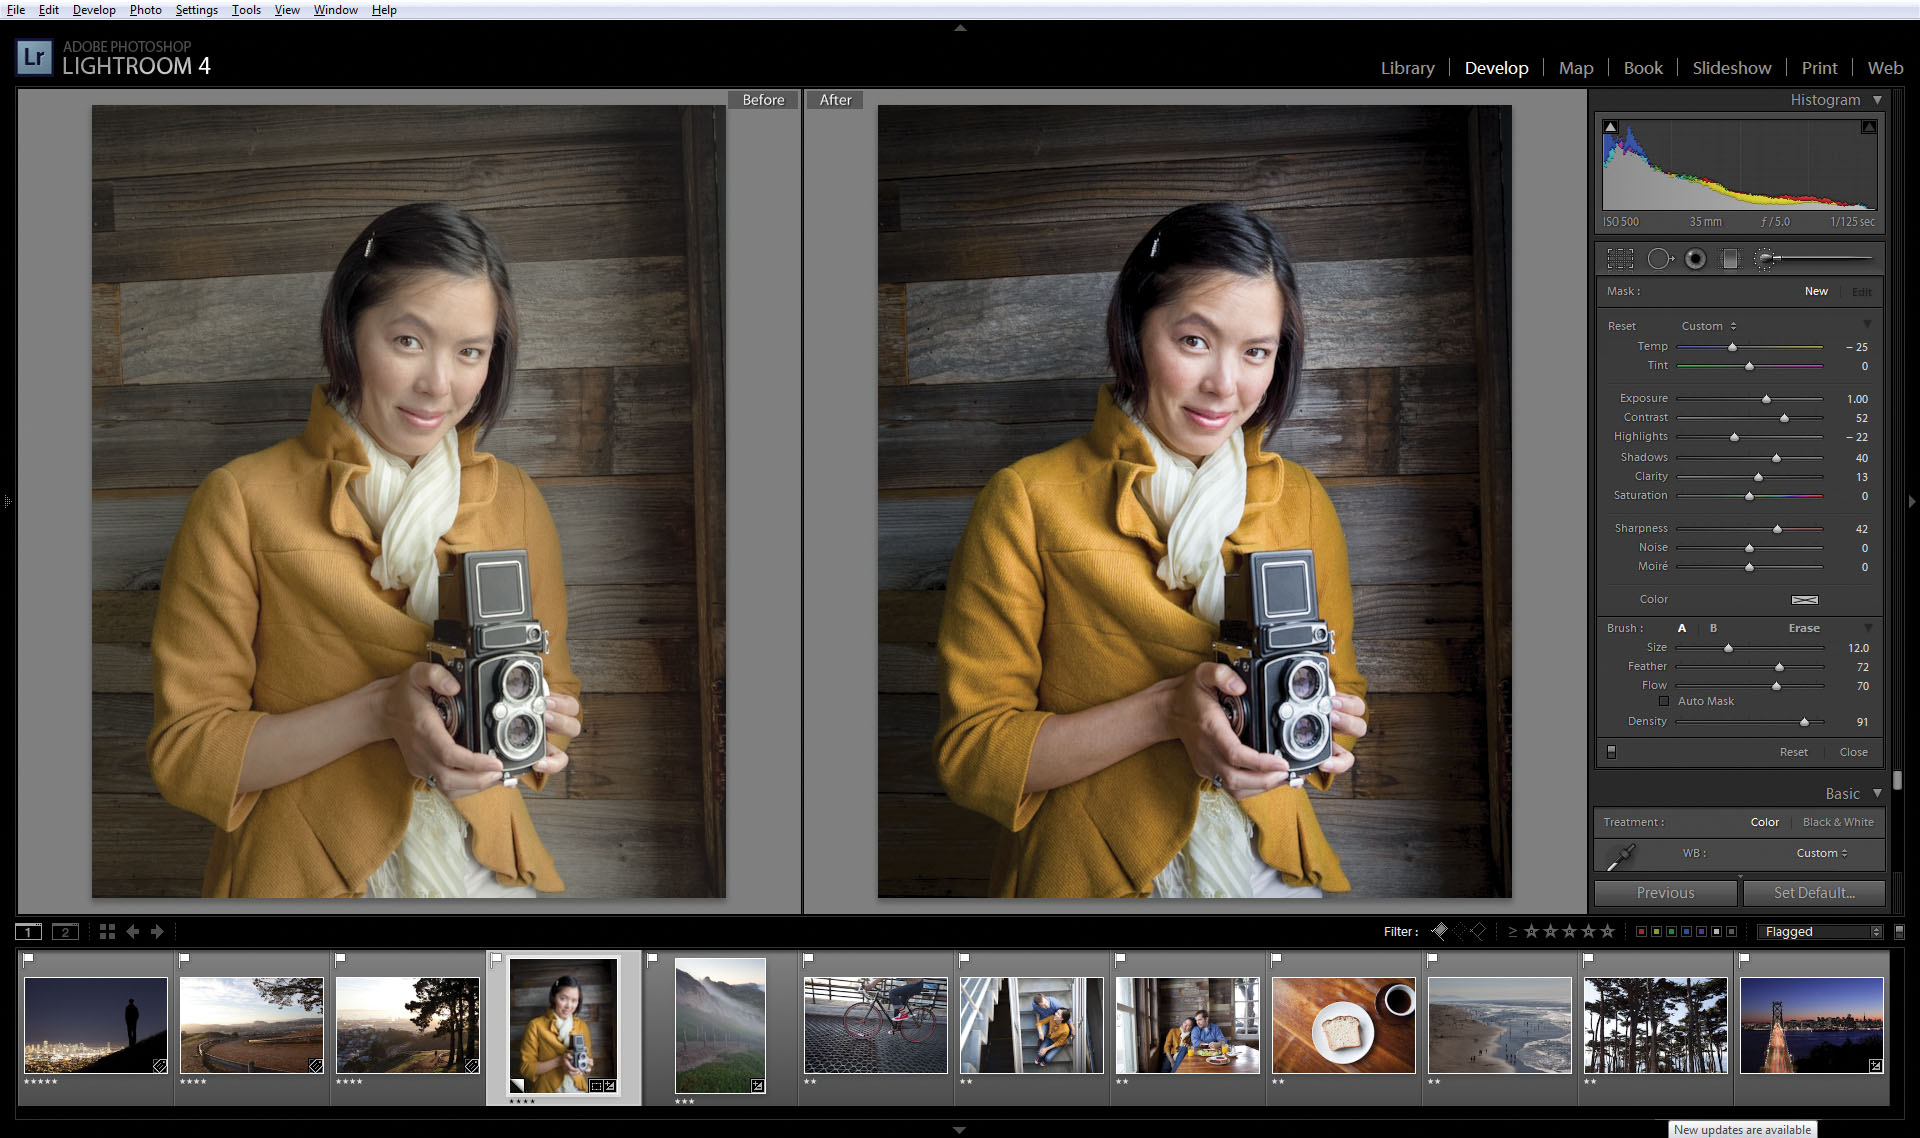 adobe photoshop lightroom free download full version for windows 10